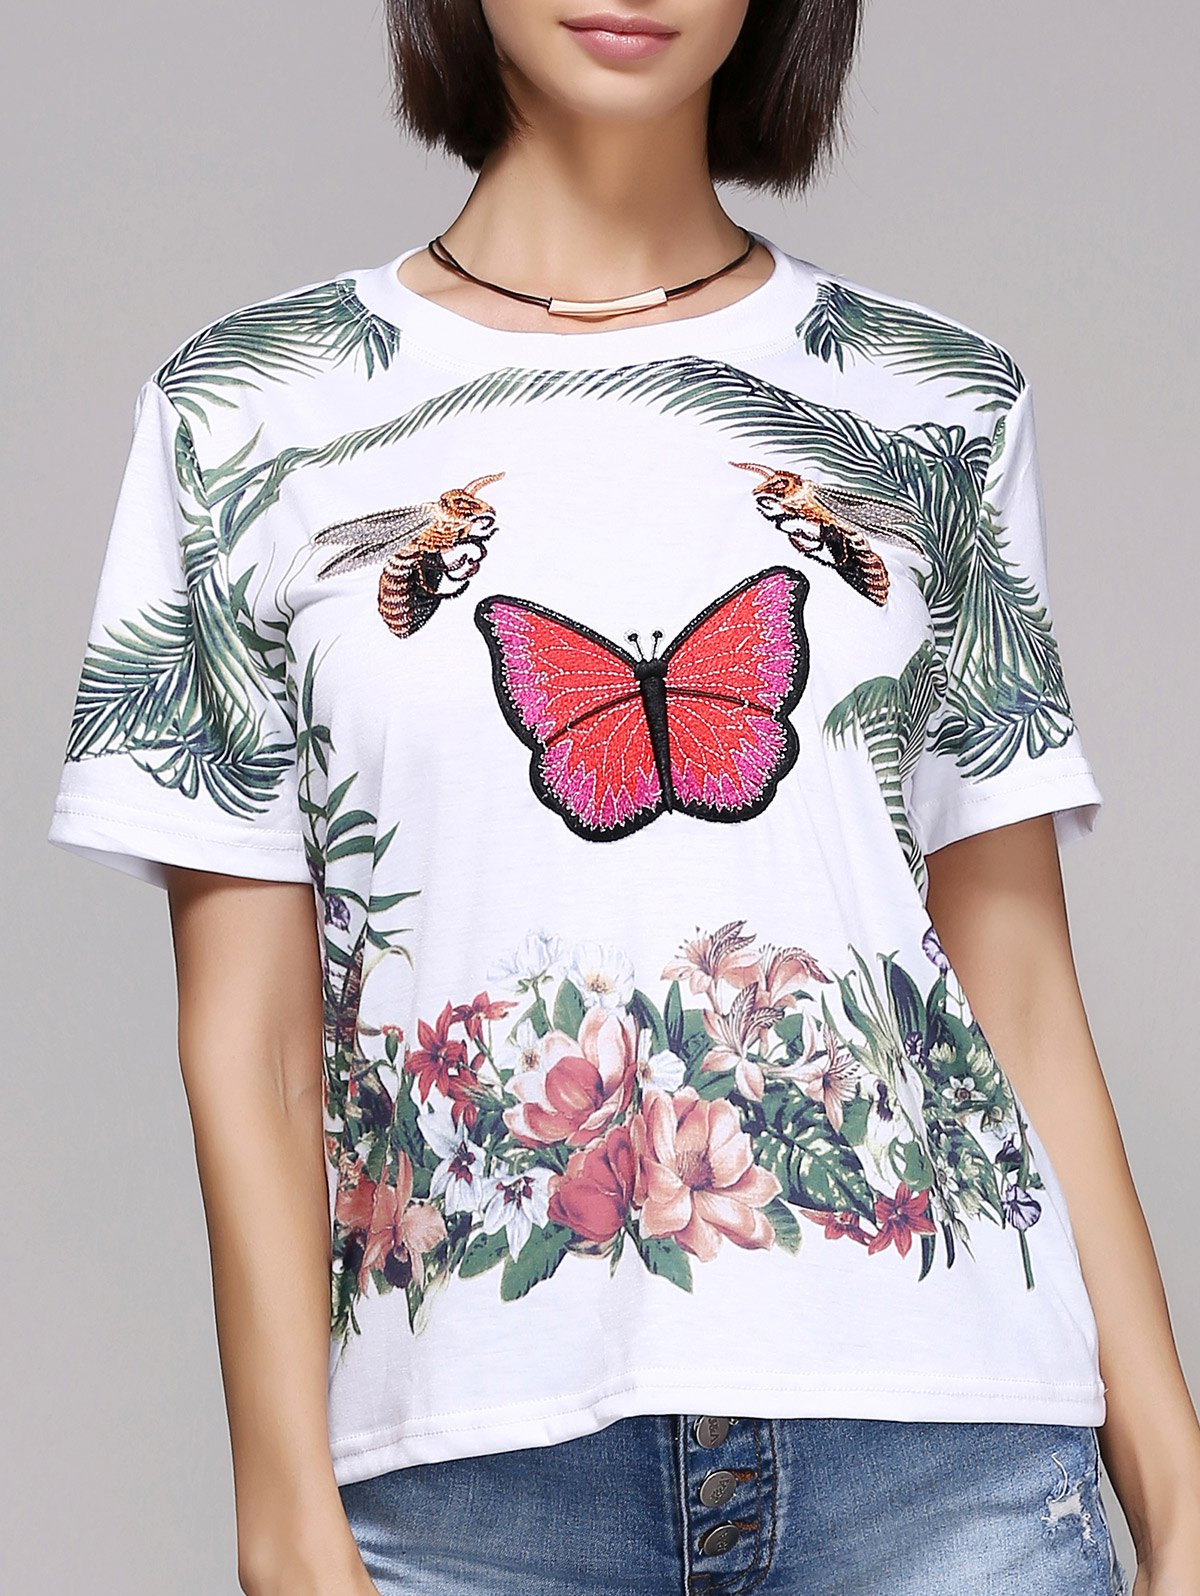 Stylish Butterfly Print Short Sleeve Round Neck T-Shirt For Women - WHITE L